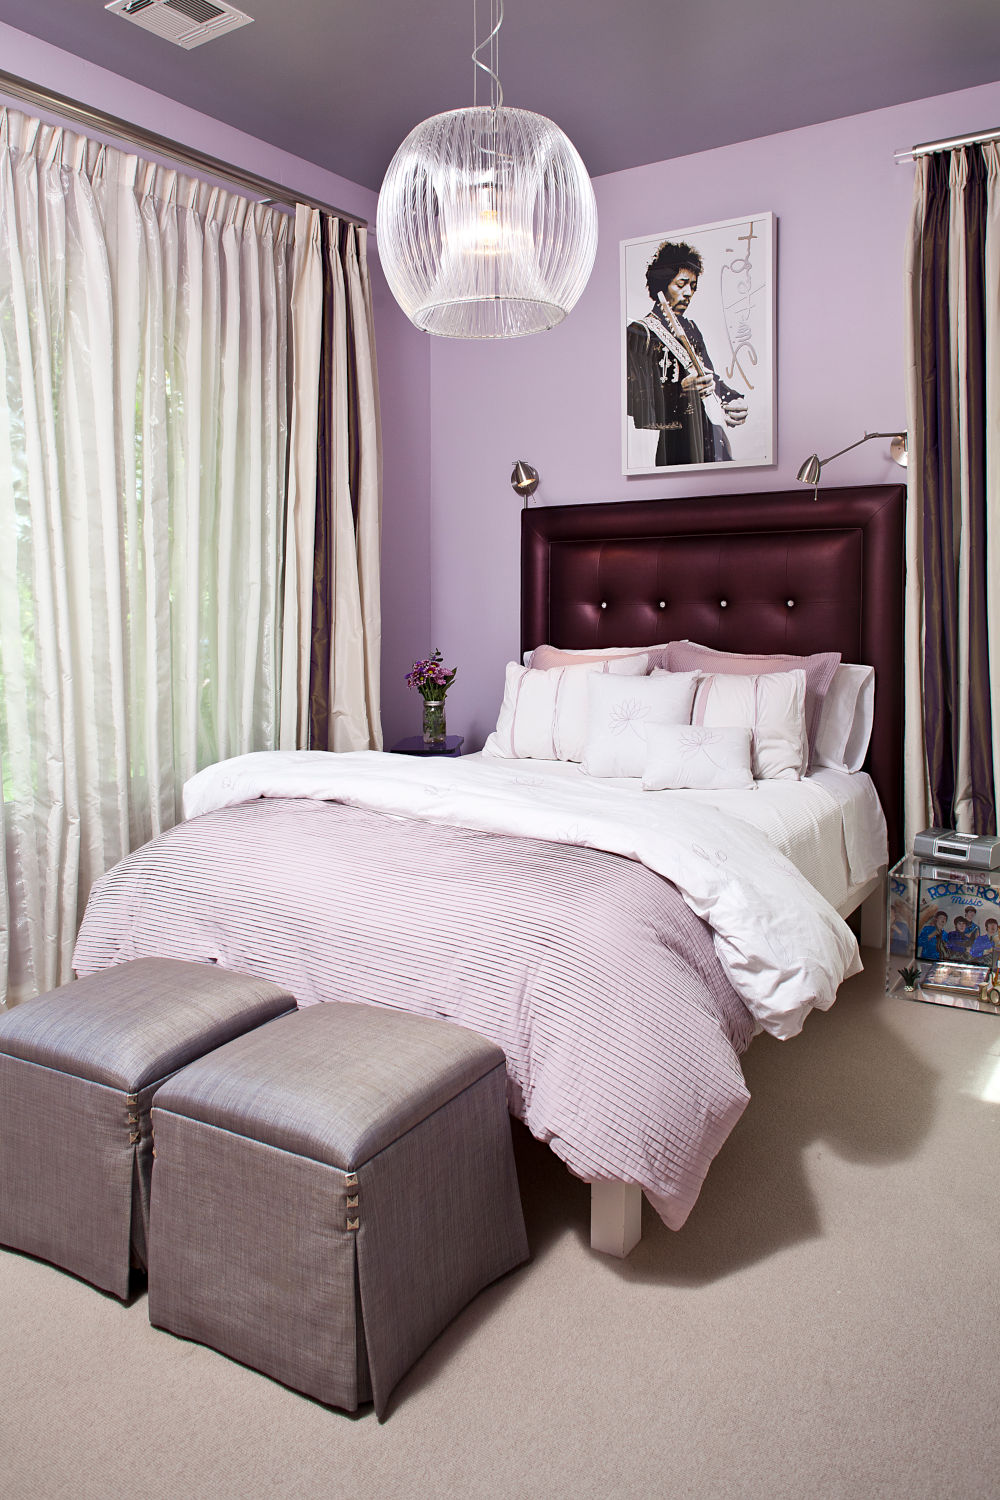 Mauve girls bedroom with purple headboard and Prince poster.